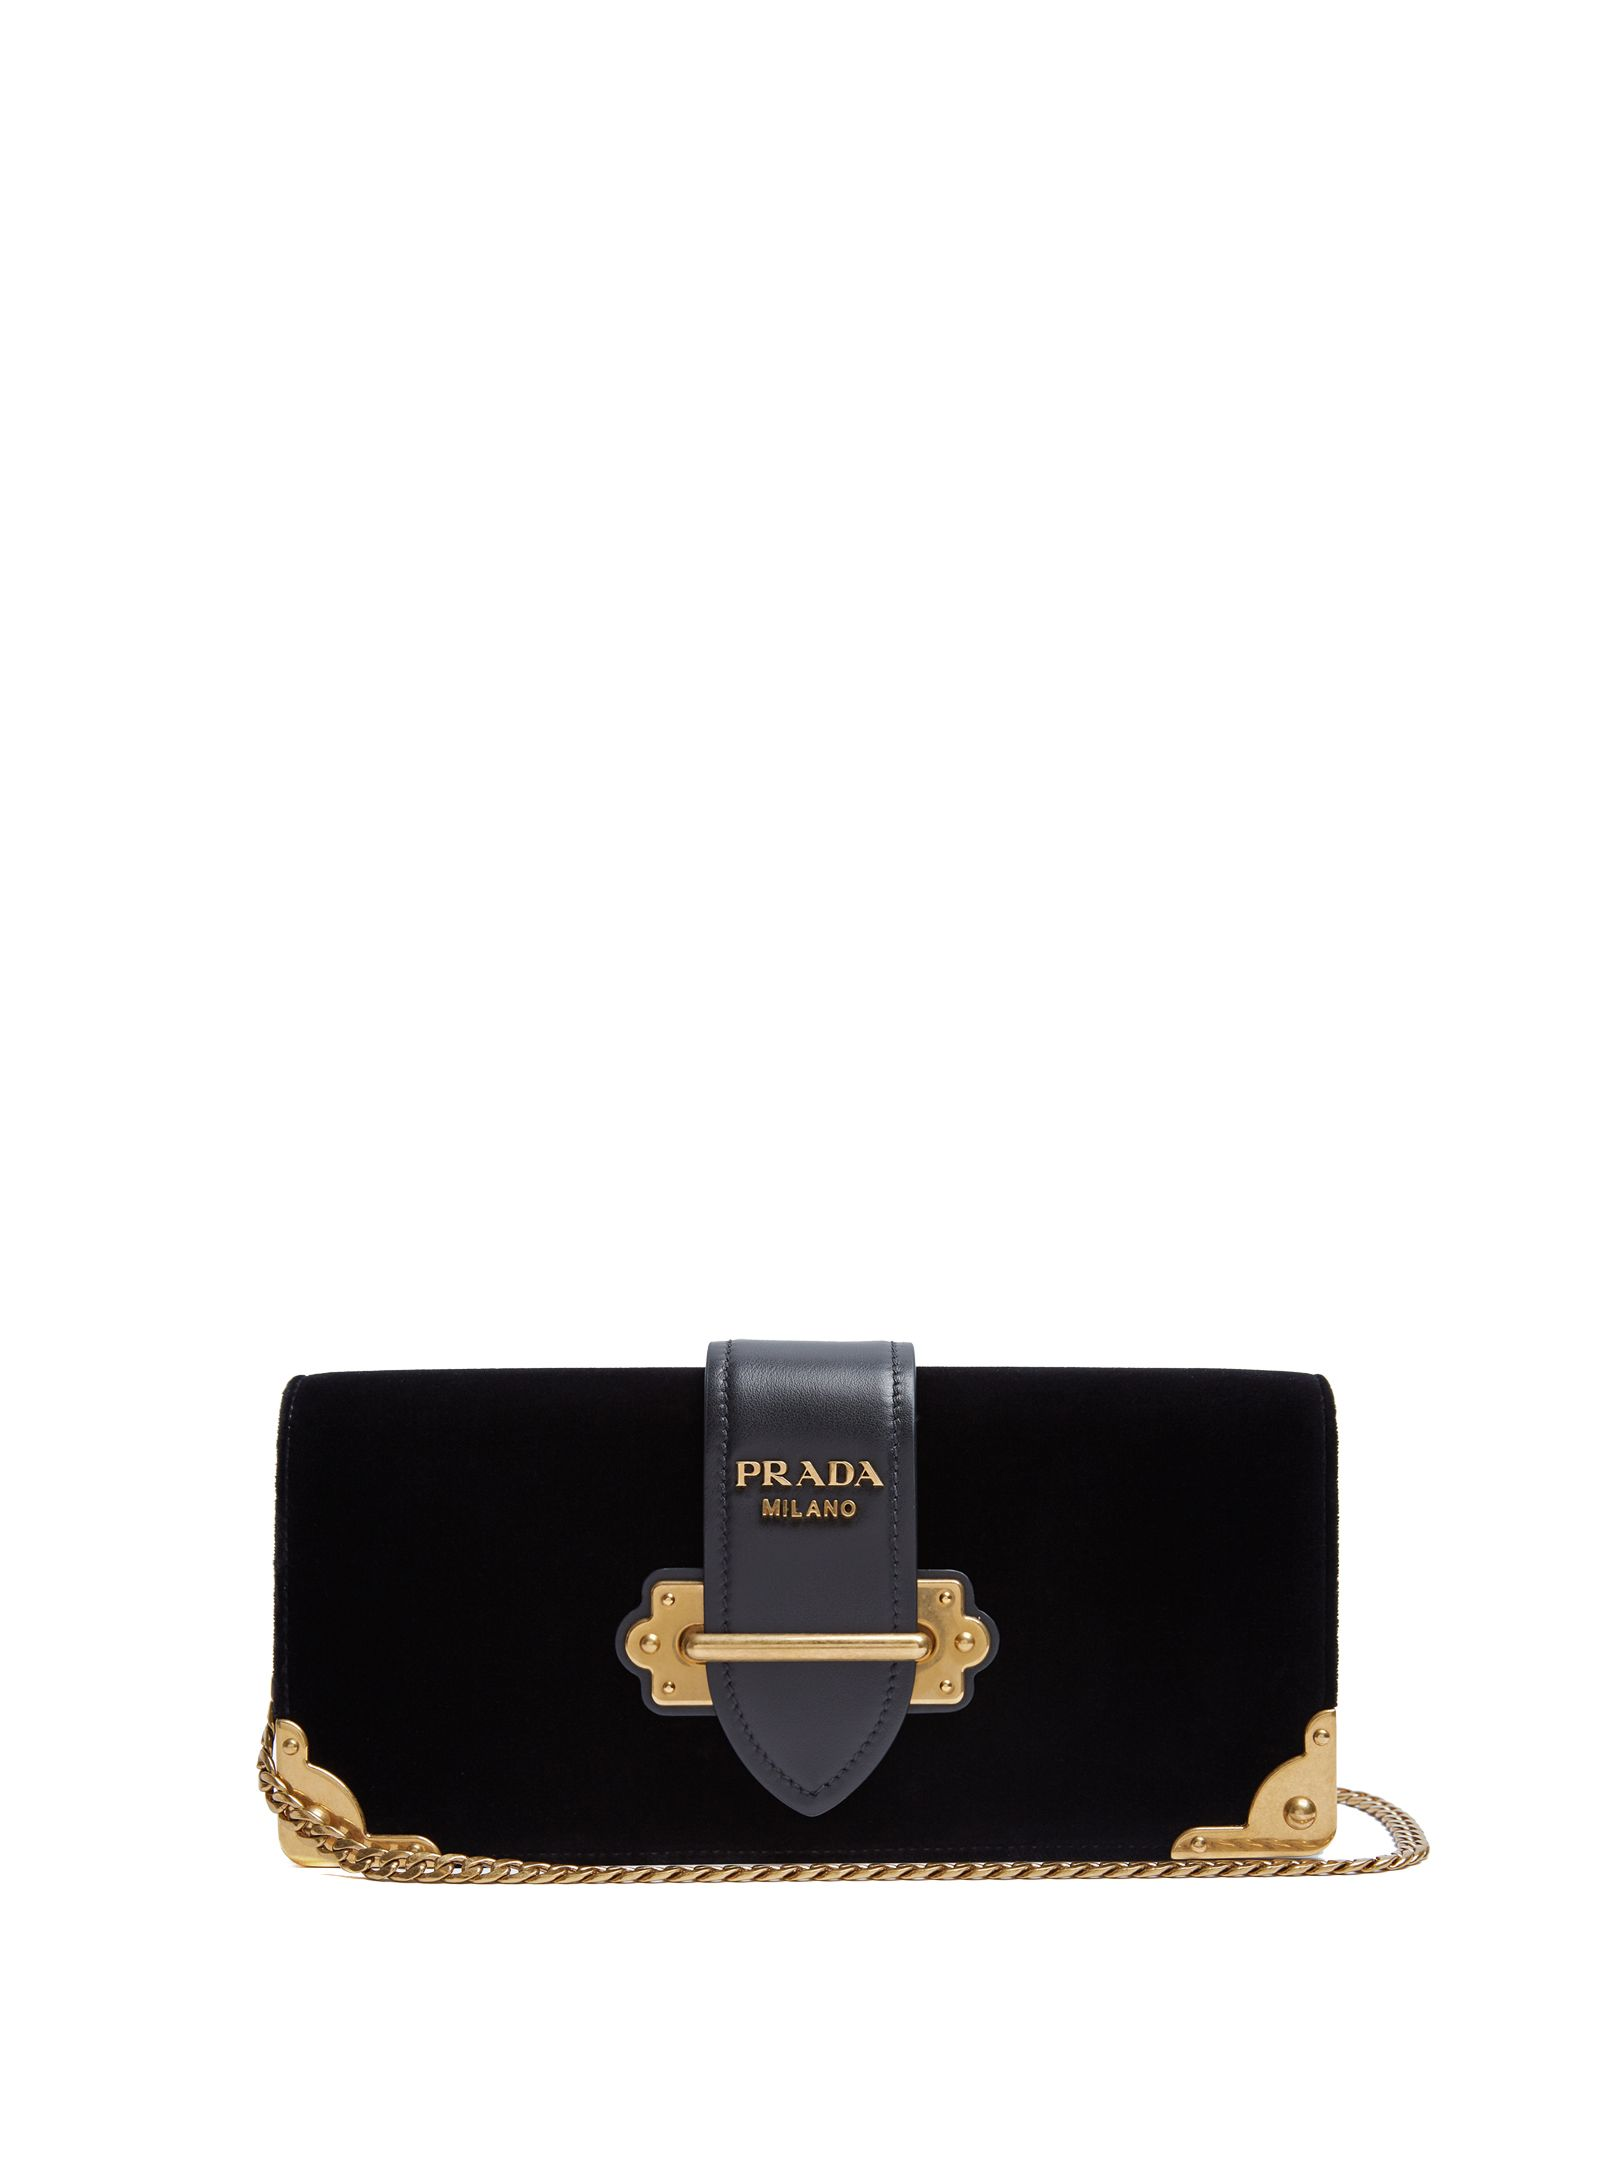 1f1fc46adc54 Click here to buy Prada Cahier velvet clutch at MATCHESFASHION.COM ...